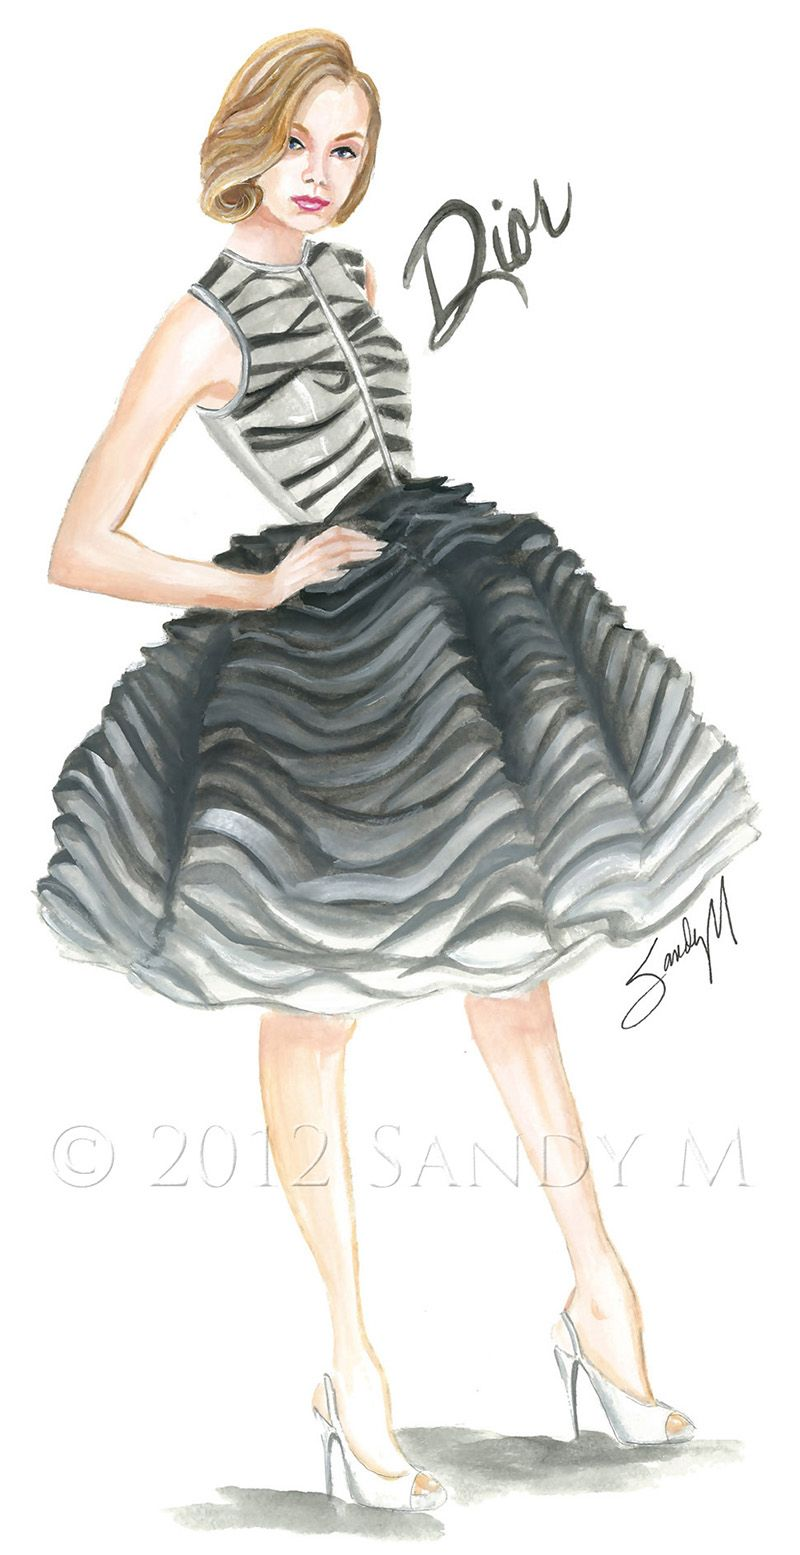 Exclusive Our Interview With Sandy M Of Ooh La Frou Frou Ilustracion De Moda Dibujos De Moda Figurines De Moda